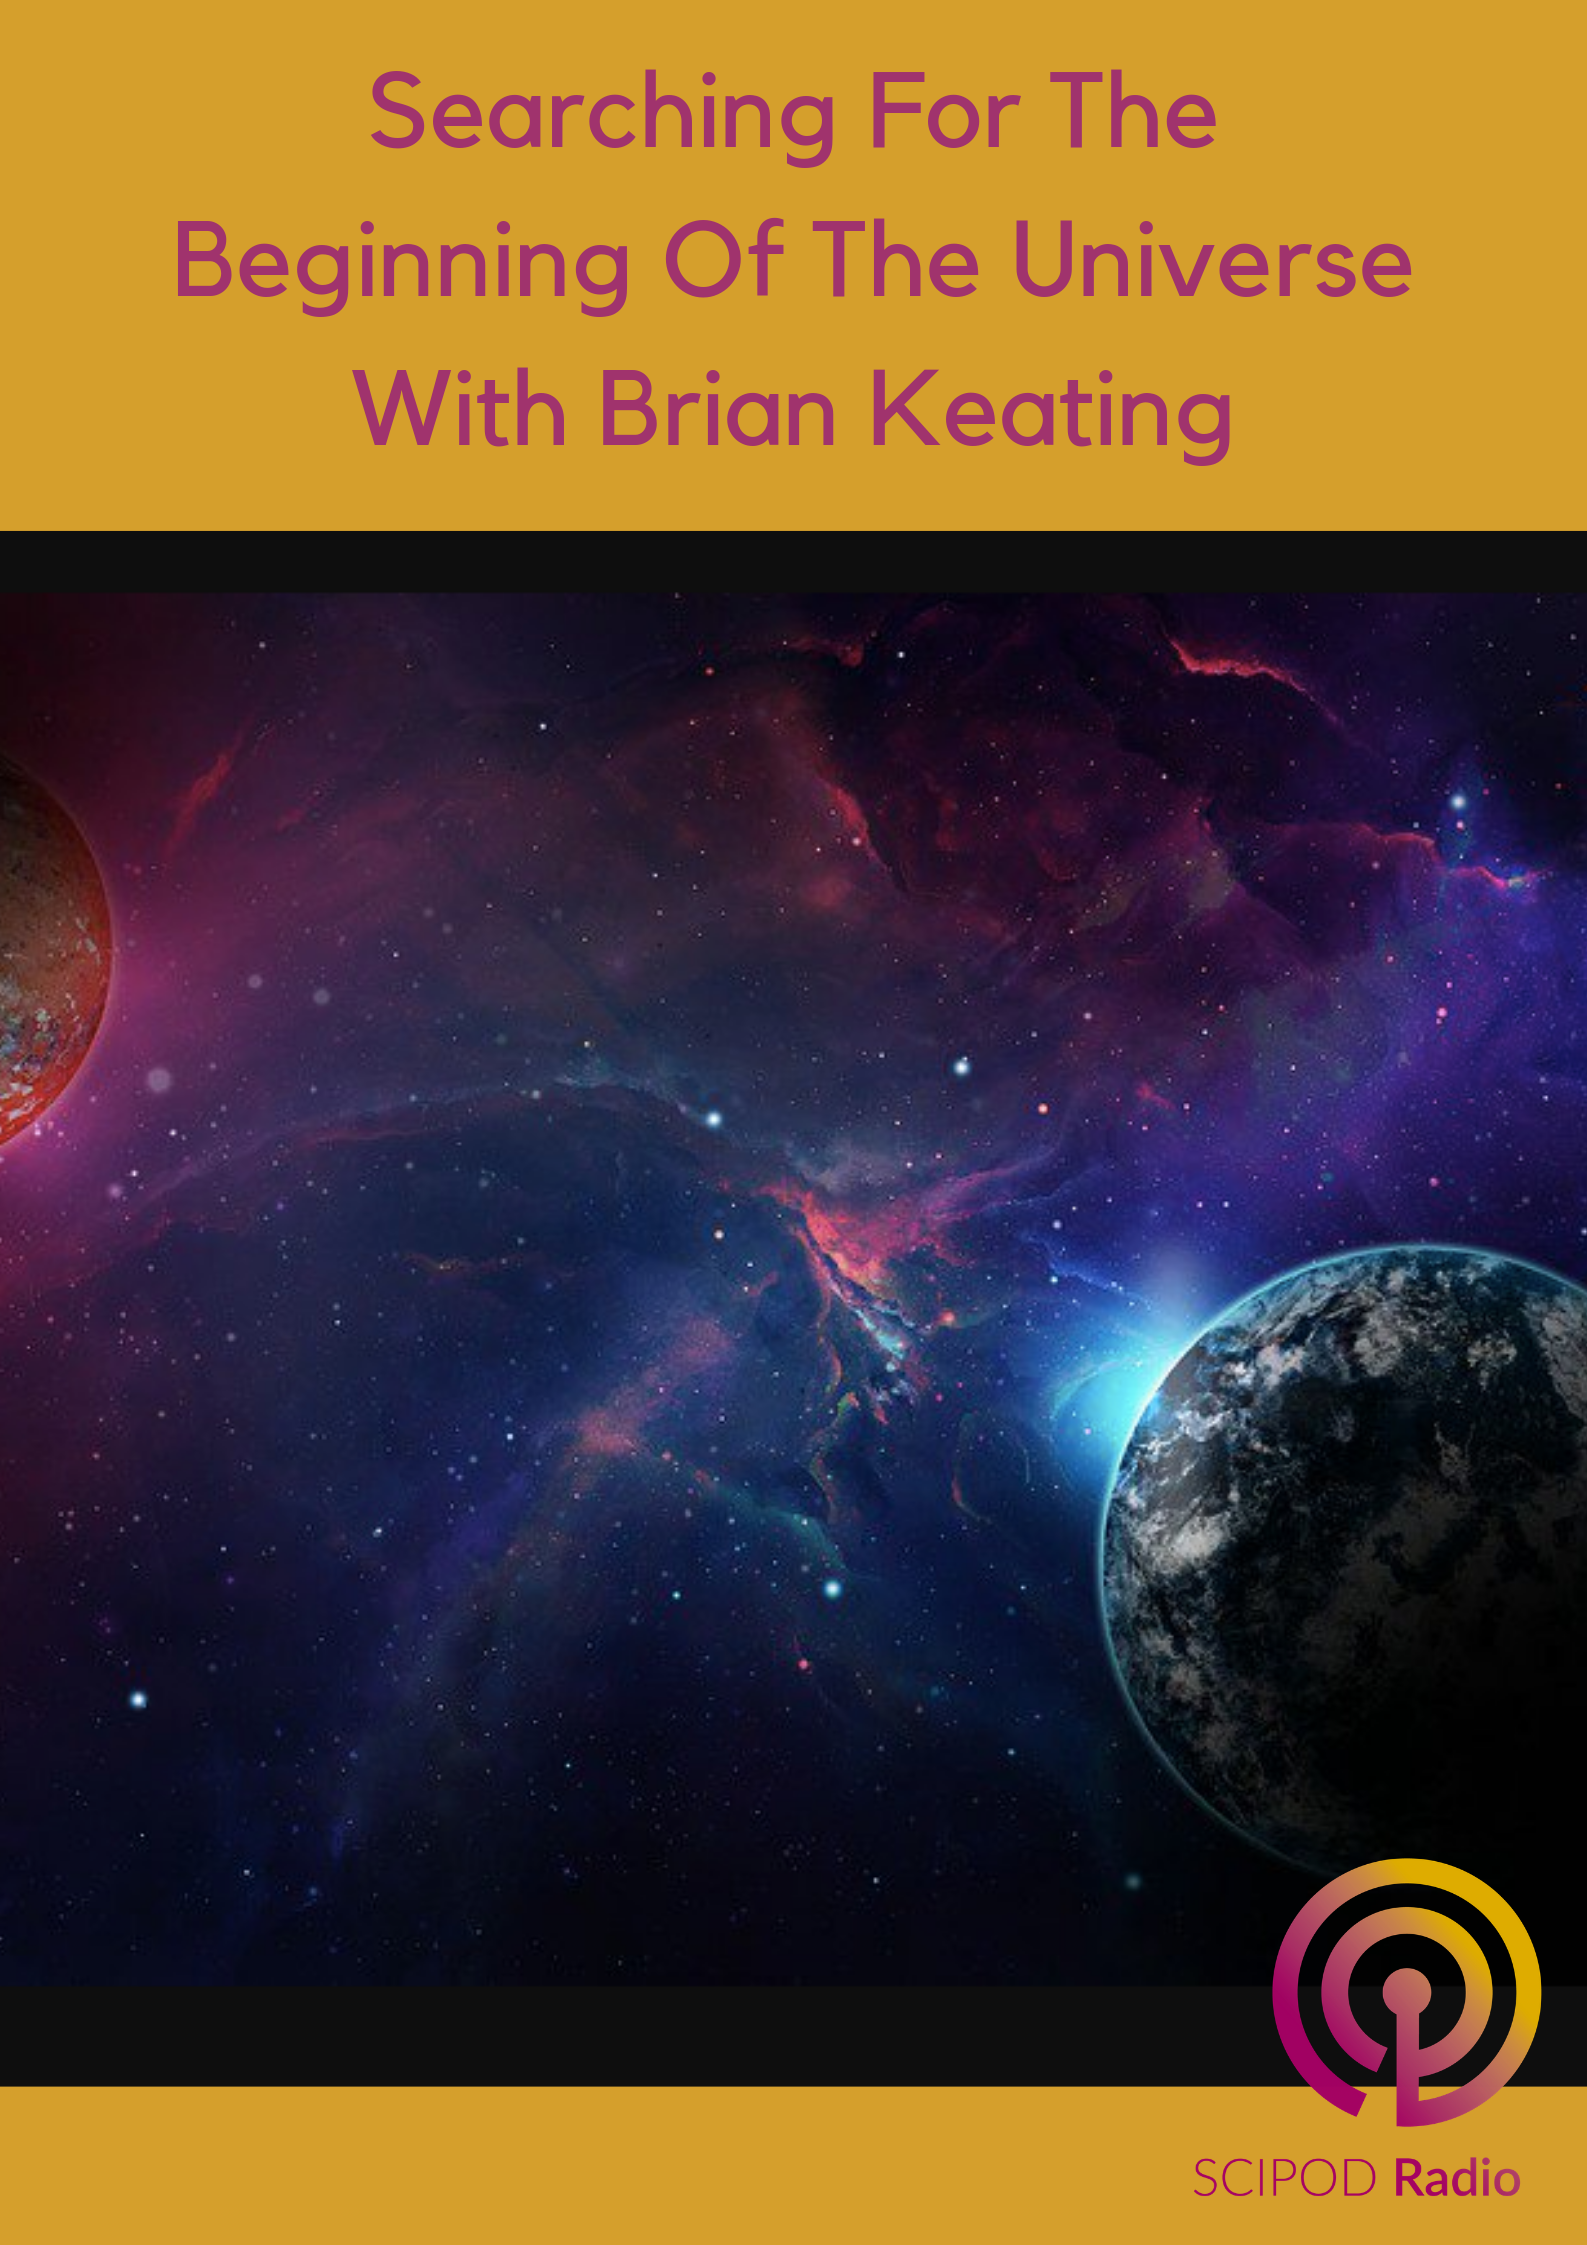 Searching For The Beginning Of The Universe With Brian Keating